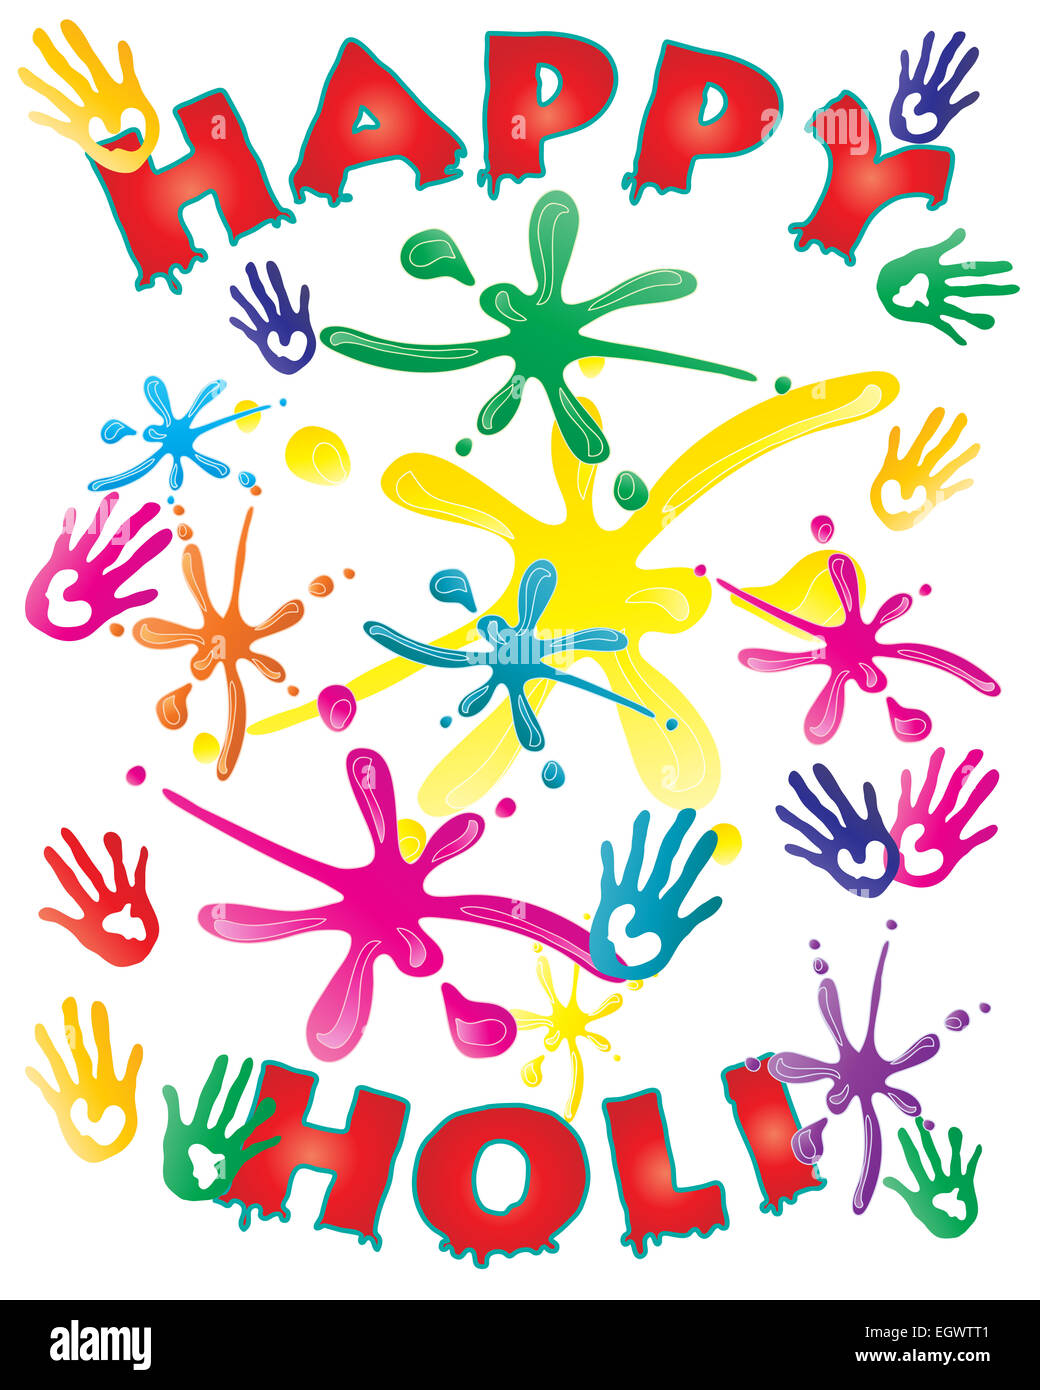 an illustration of a colorful Holi festival greeting card with ...